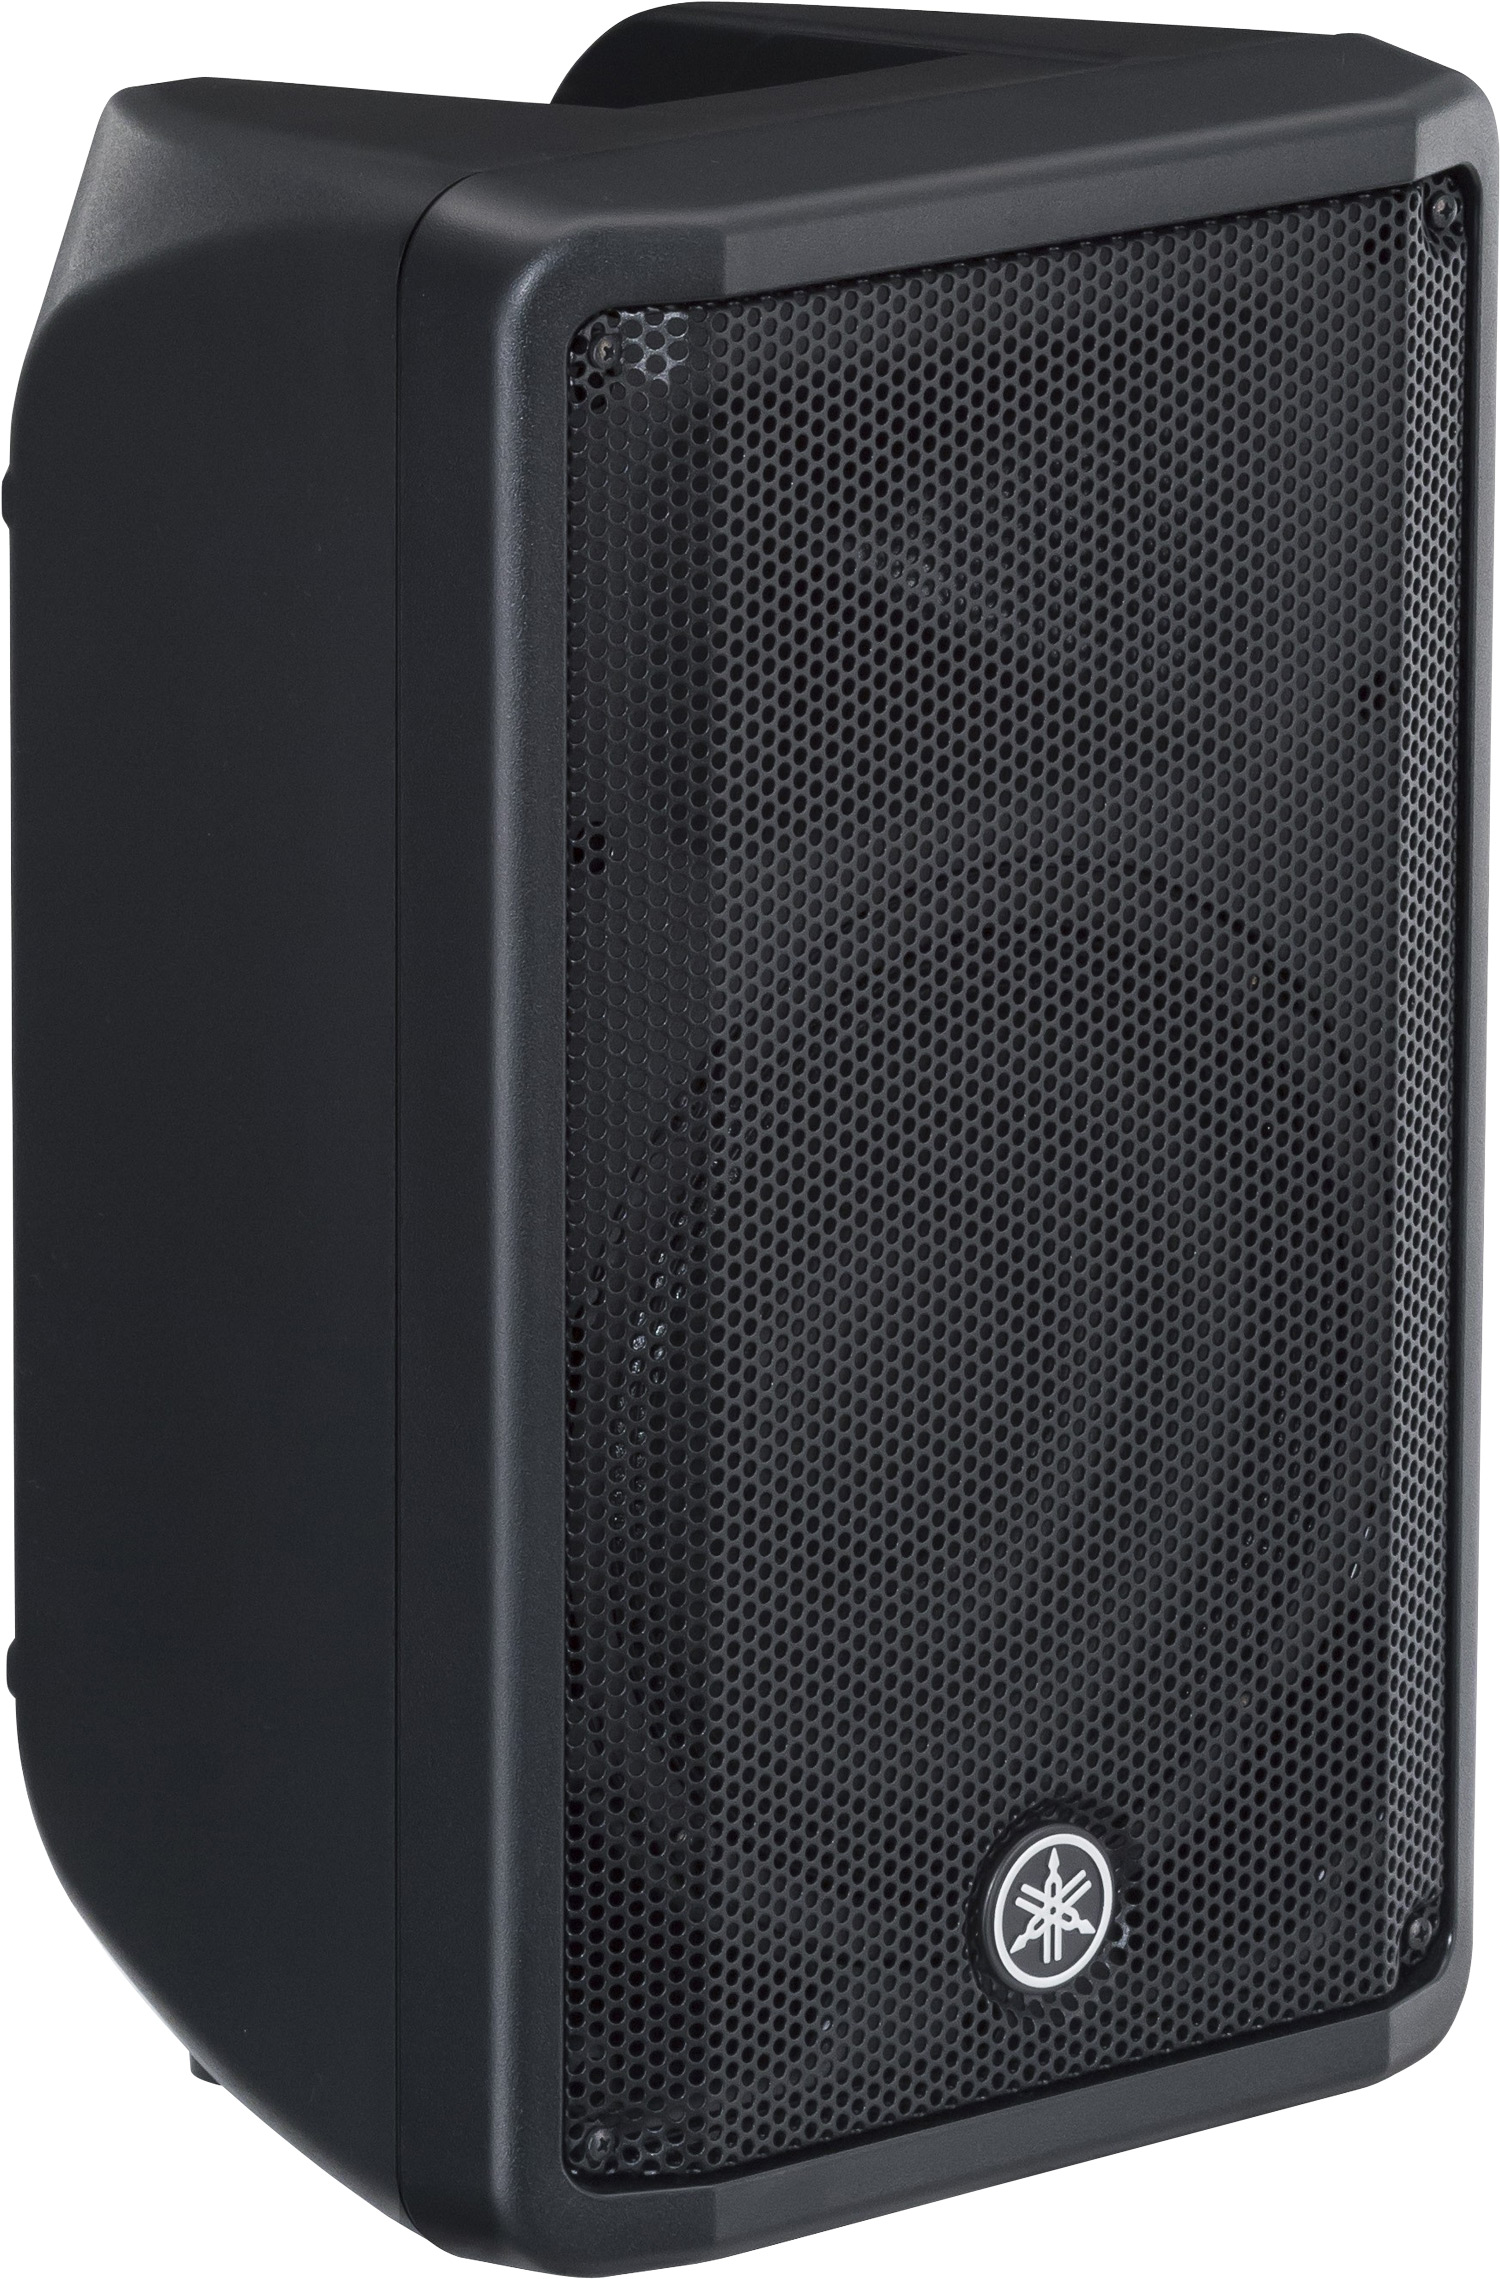 Musicworks pa powered speakers front of house speakers for Yamaha powered speakers review